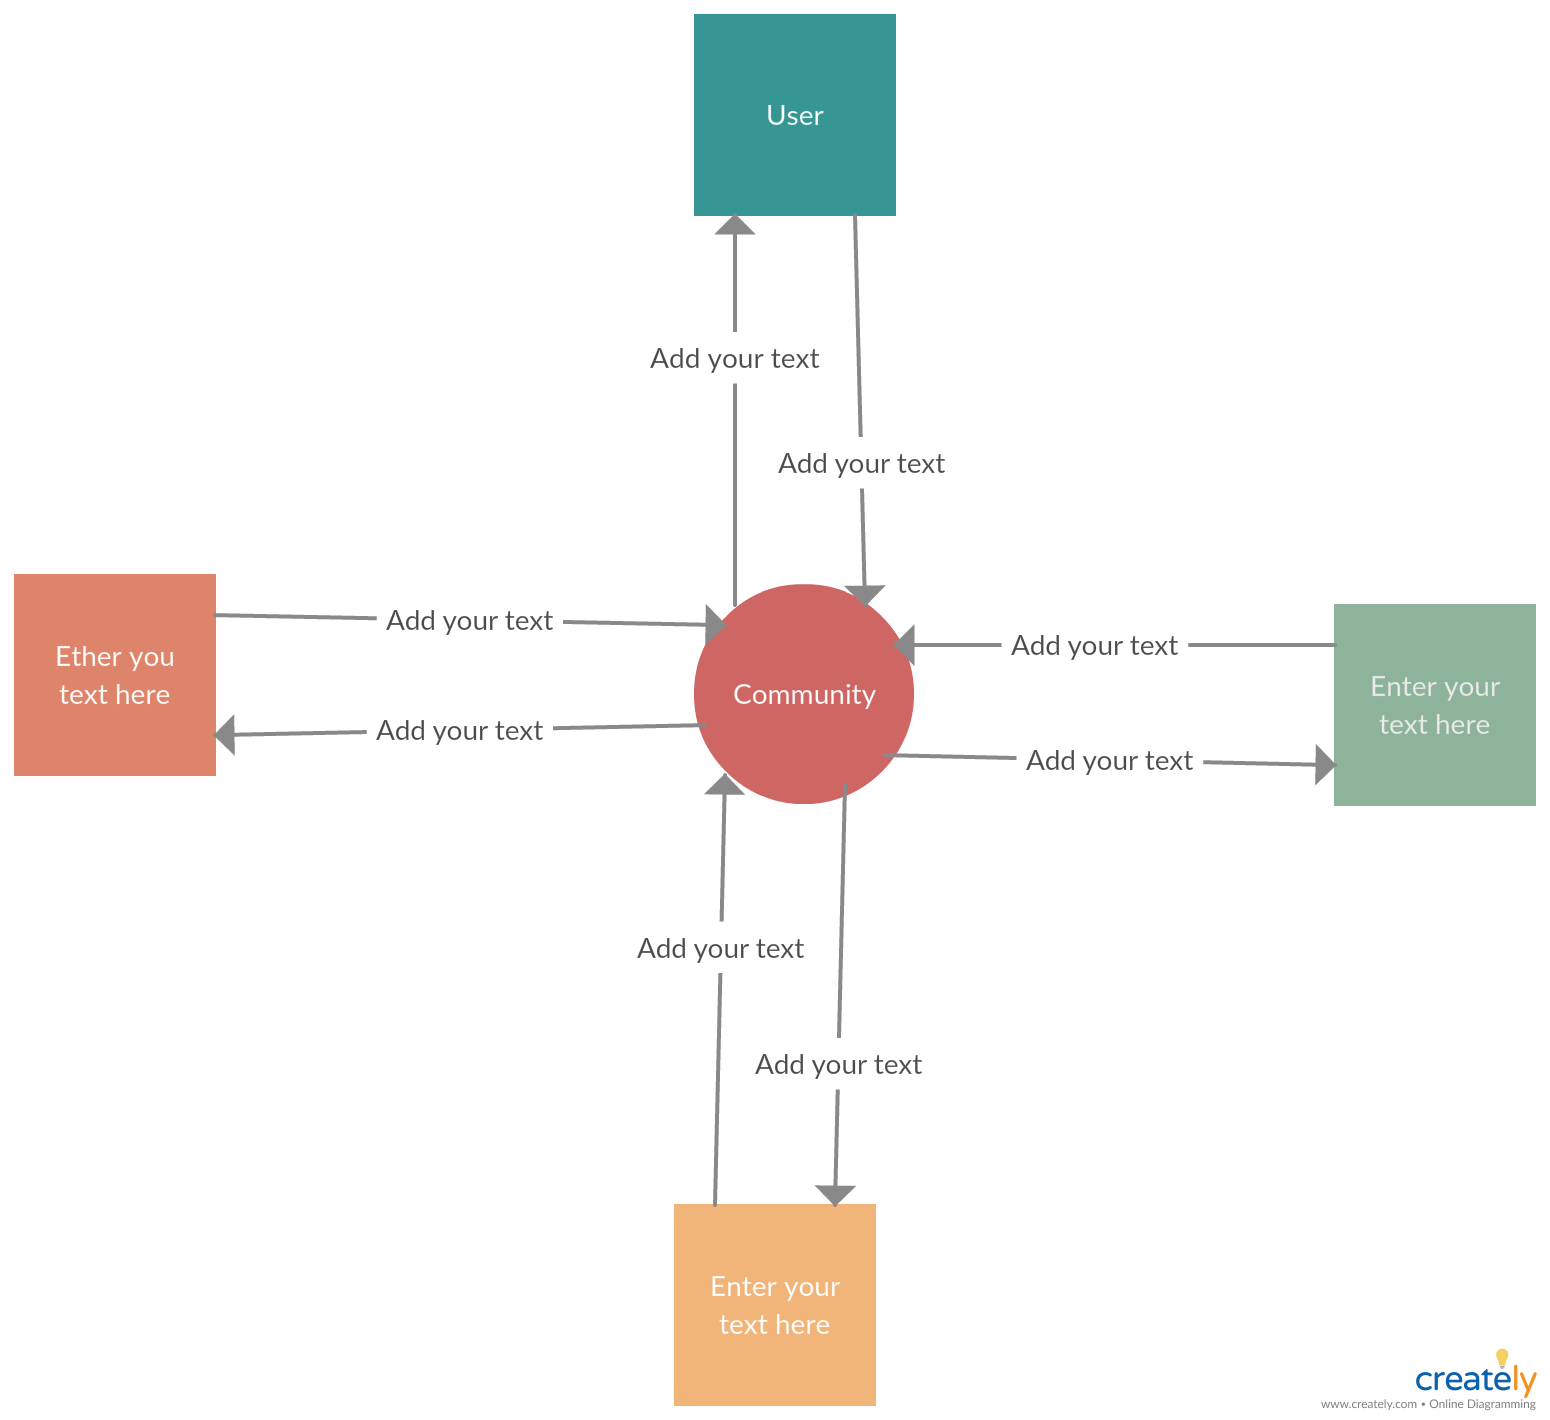 medium resolution of a data flow diagram of school management system level 1 shared by one of our users with our community dfd yc chaos theory2 data flow diagram